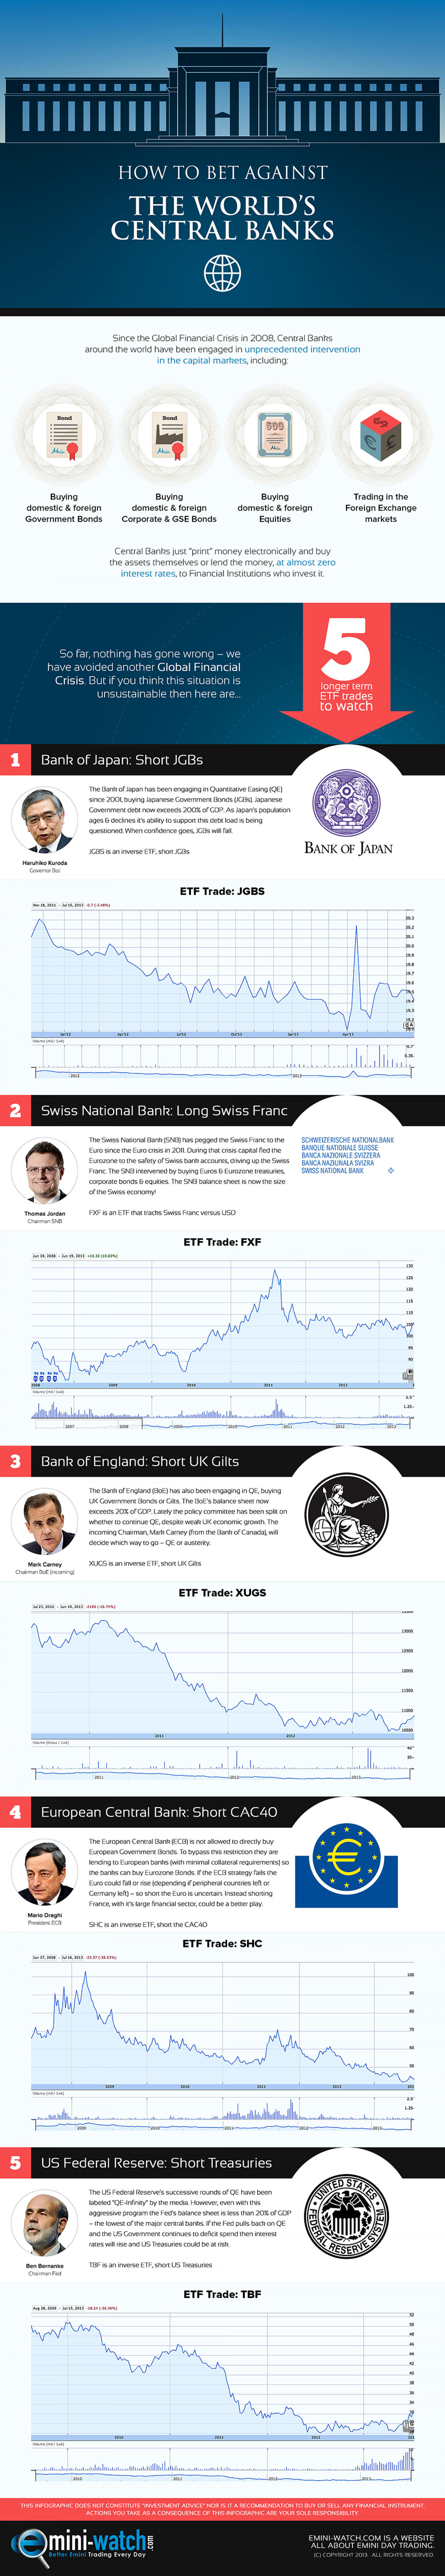 How to Bet Against the World's Central Banks Infographic